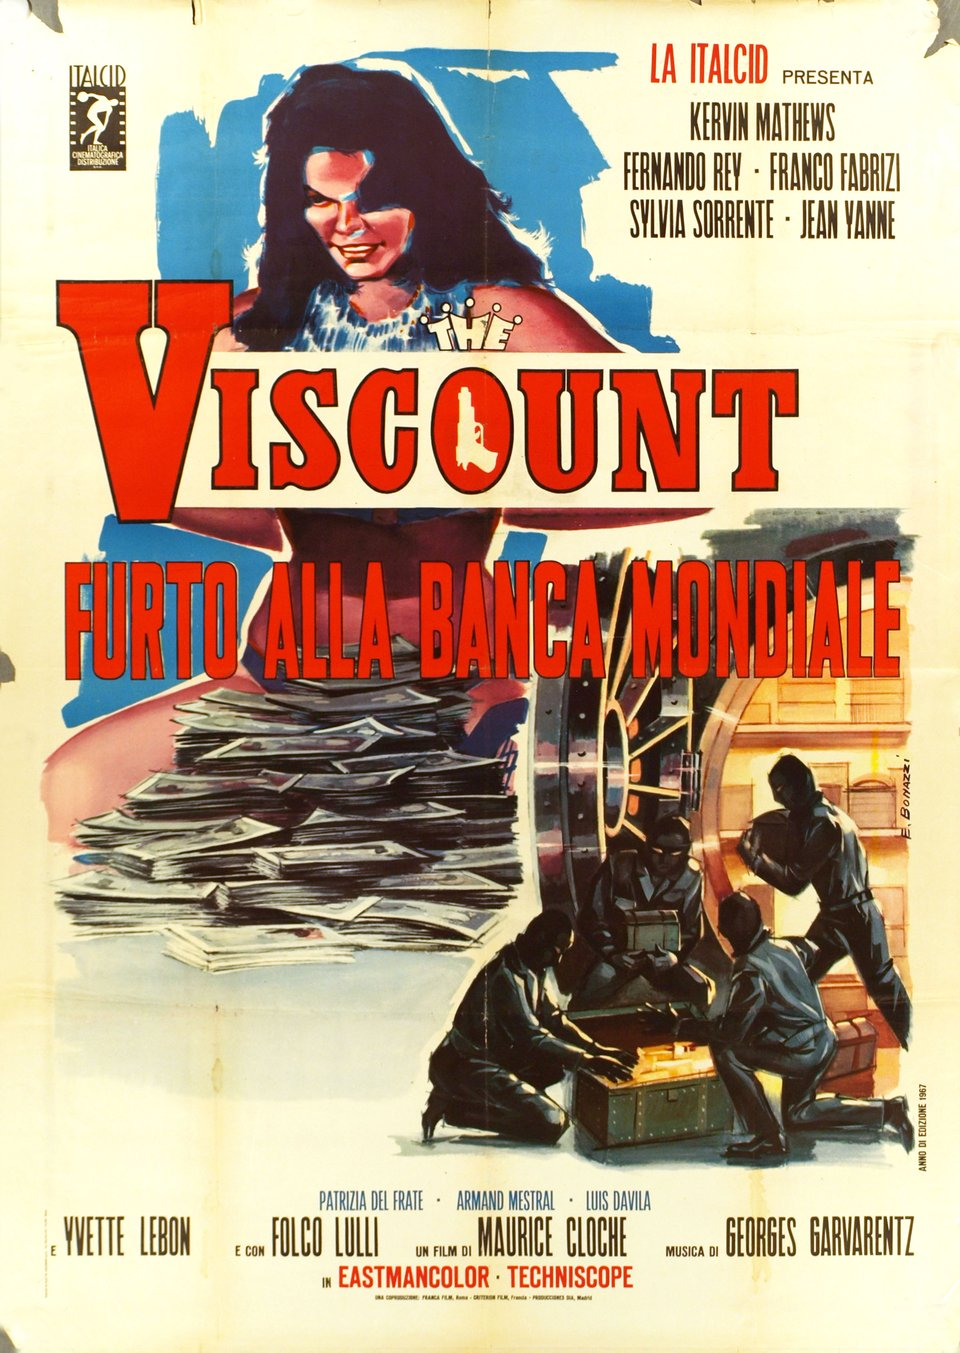 The Viscount, Furto alla banca mondiale – Affiche ancienne – E. BONAZZI – 1967